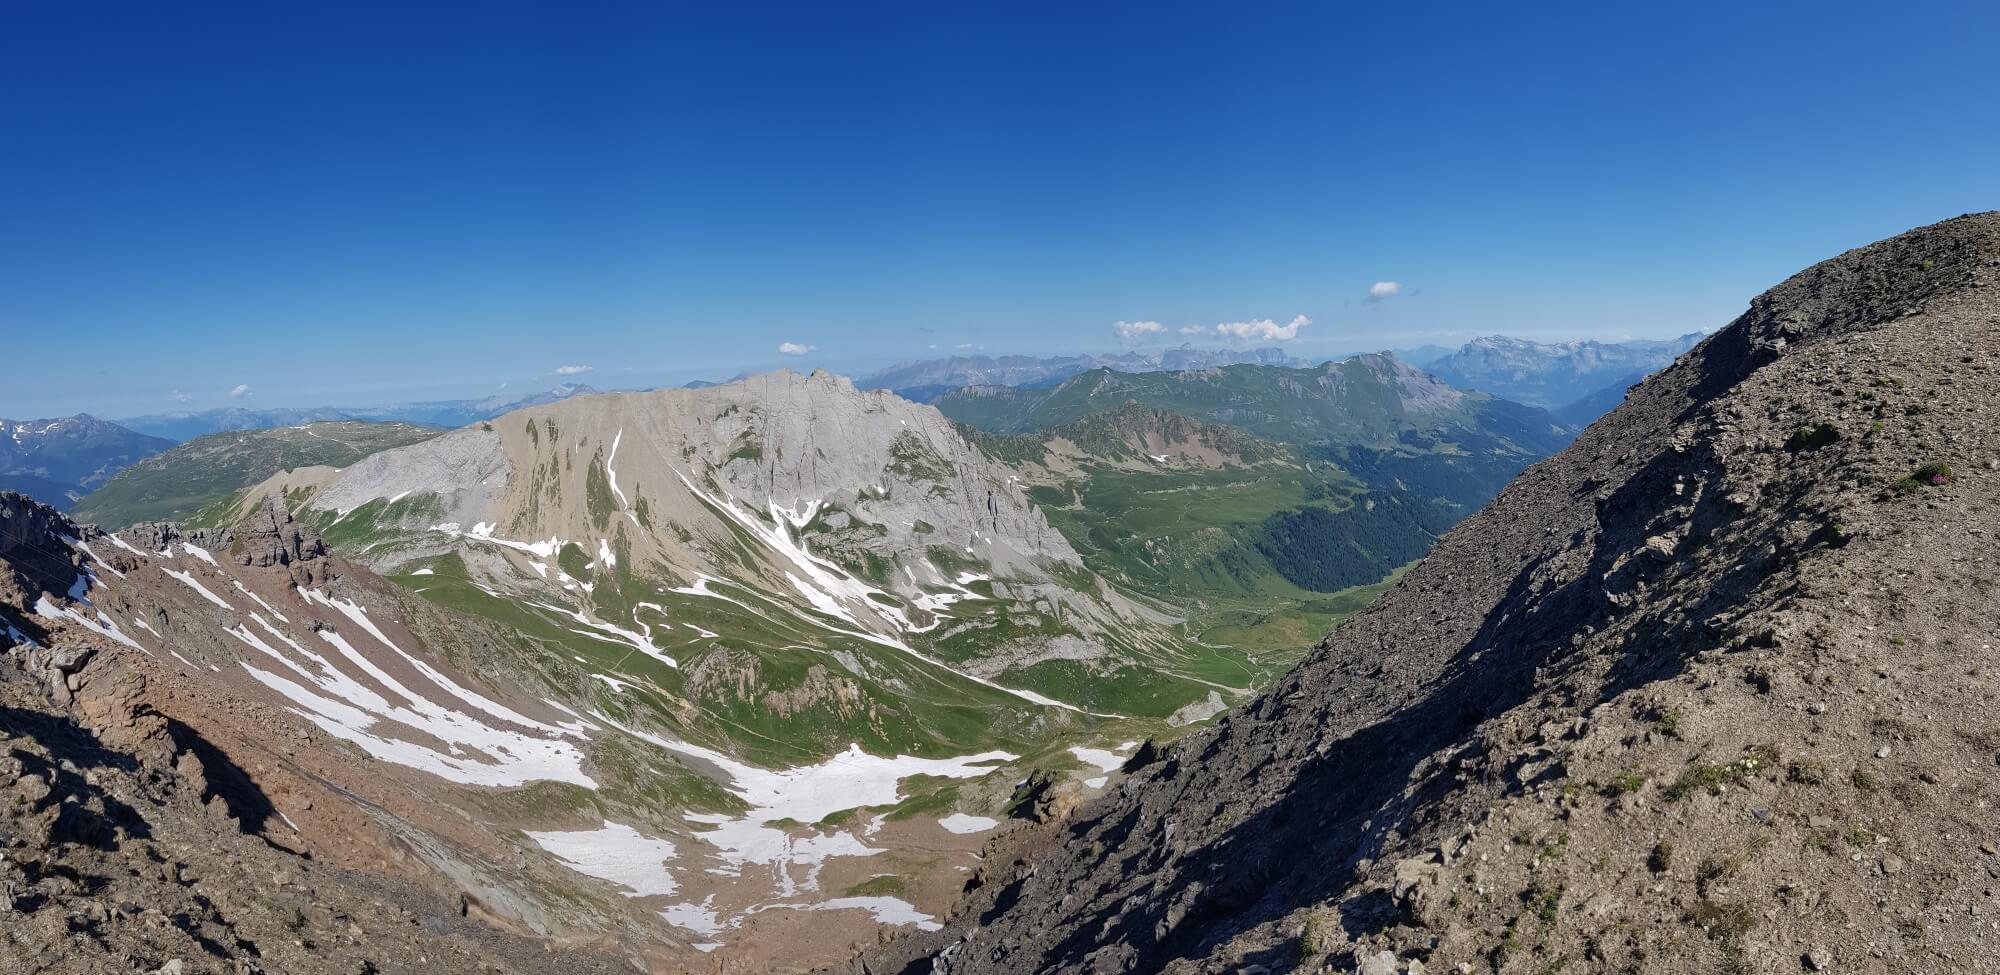 Col des Fours:  Snow still on some high parts of the trail in mid July 2018